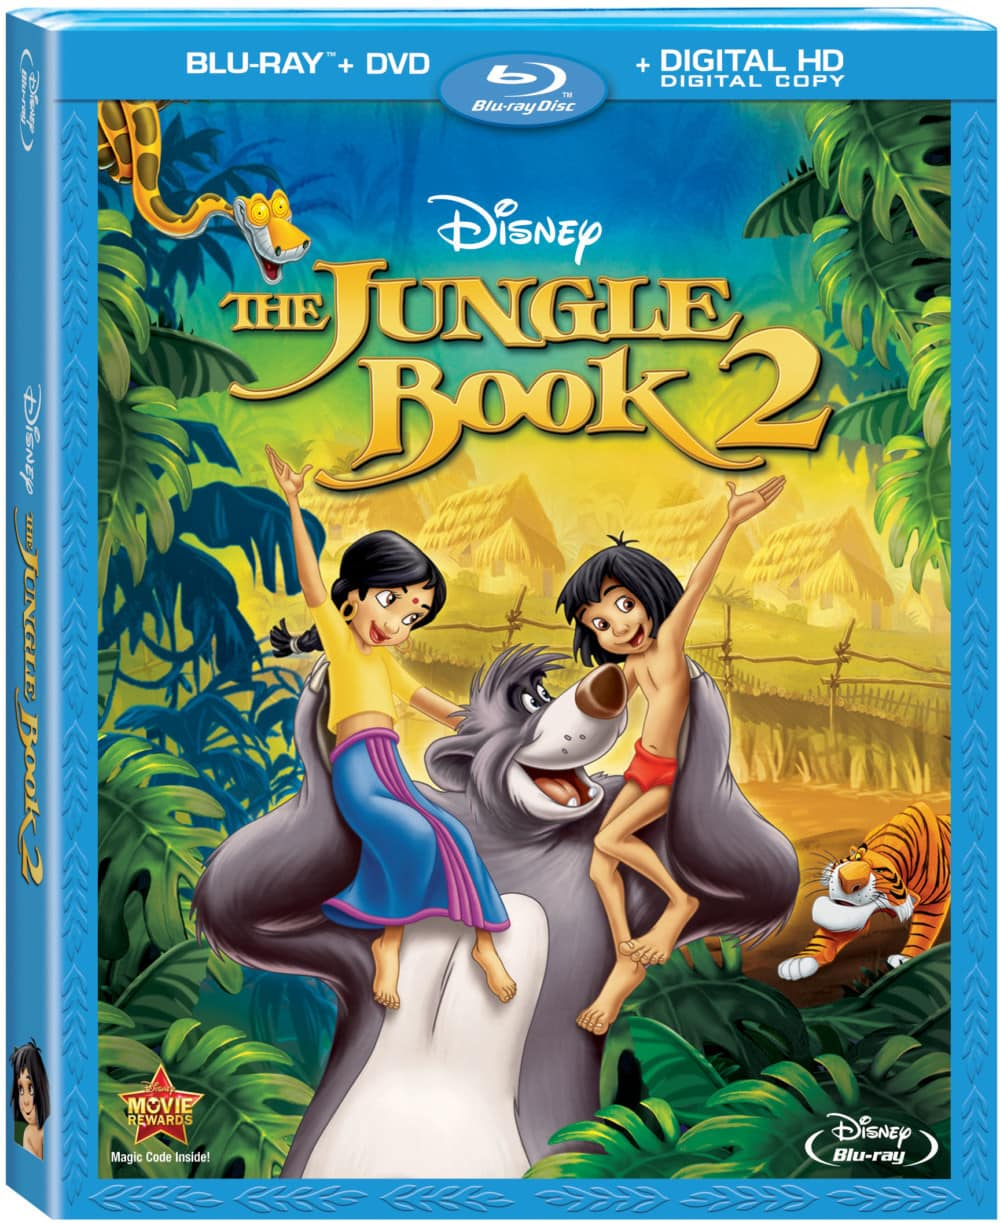 Disney's The Jungle Book 2 Available on Blu-Ray/DVD 3/18